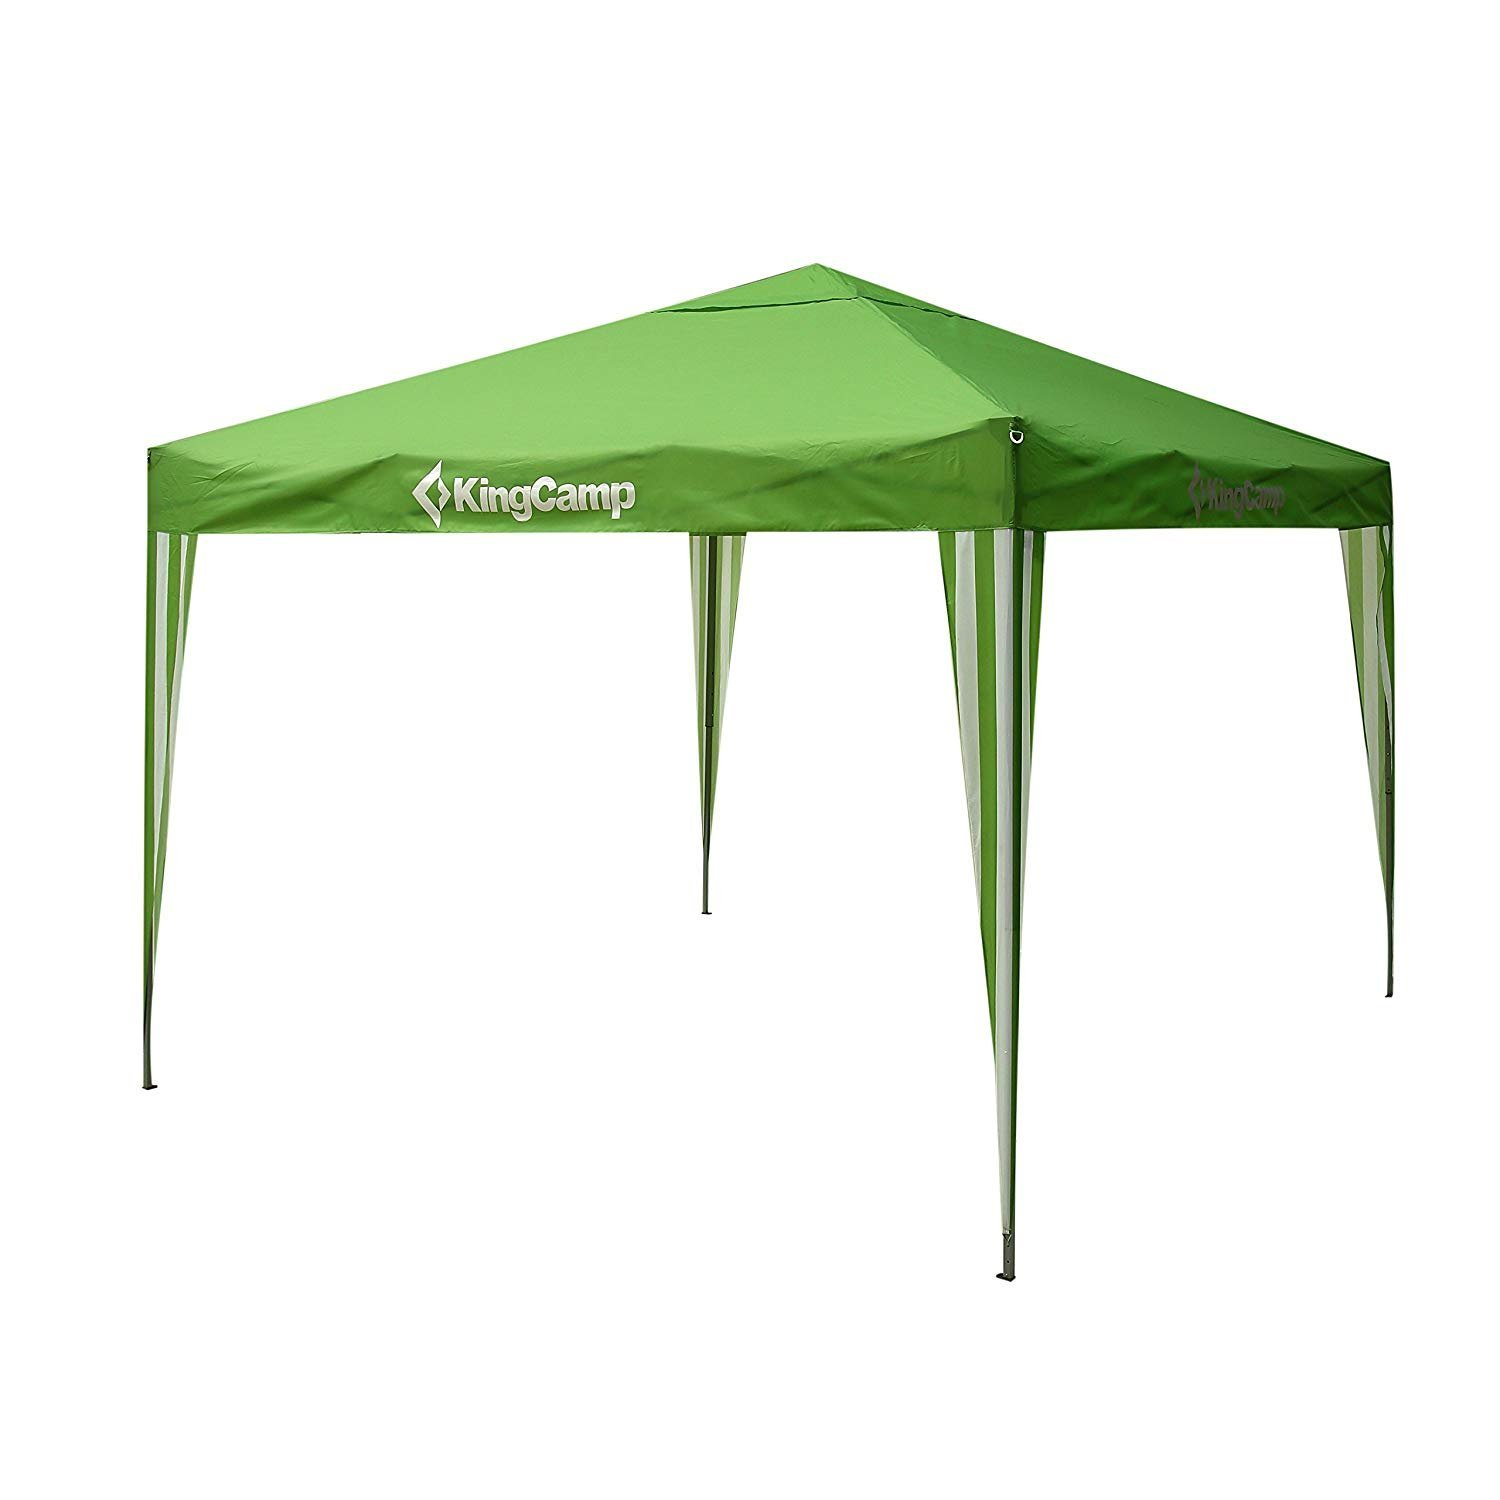 KingCamp Canopy 10 x 10 Feet Outdoor Instant Tent Camping Sun Shade Portable Folding Collapsible with Easy-Pull Roller Wheeled Carry Bag